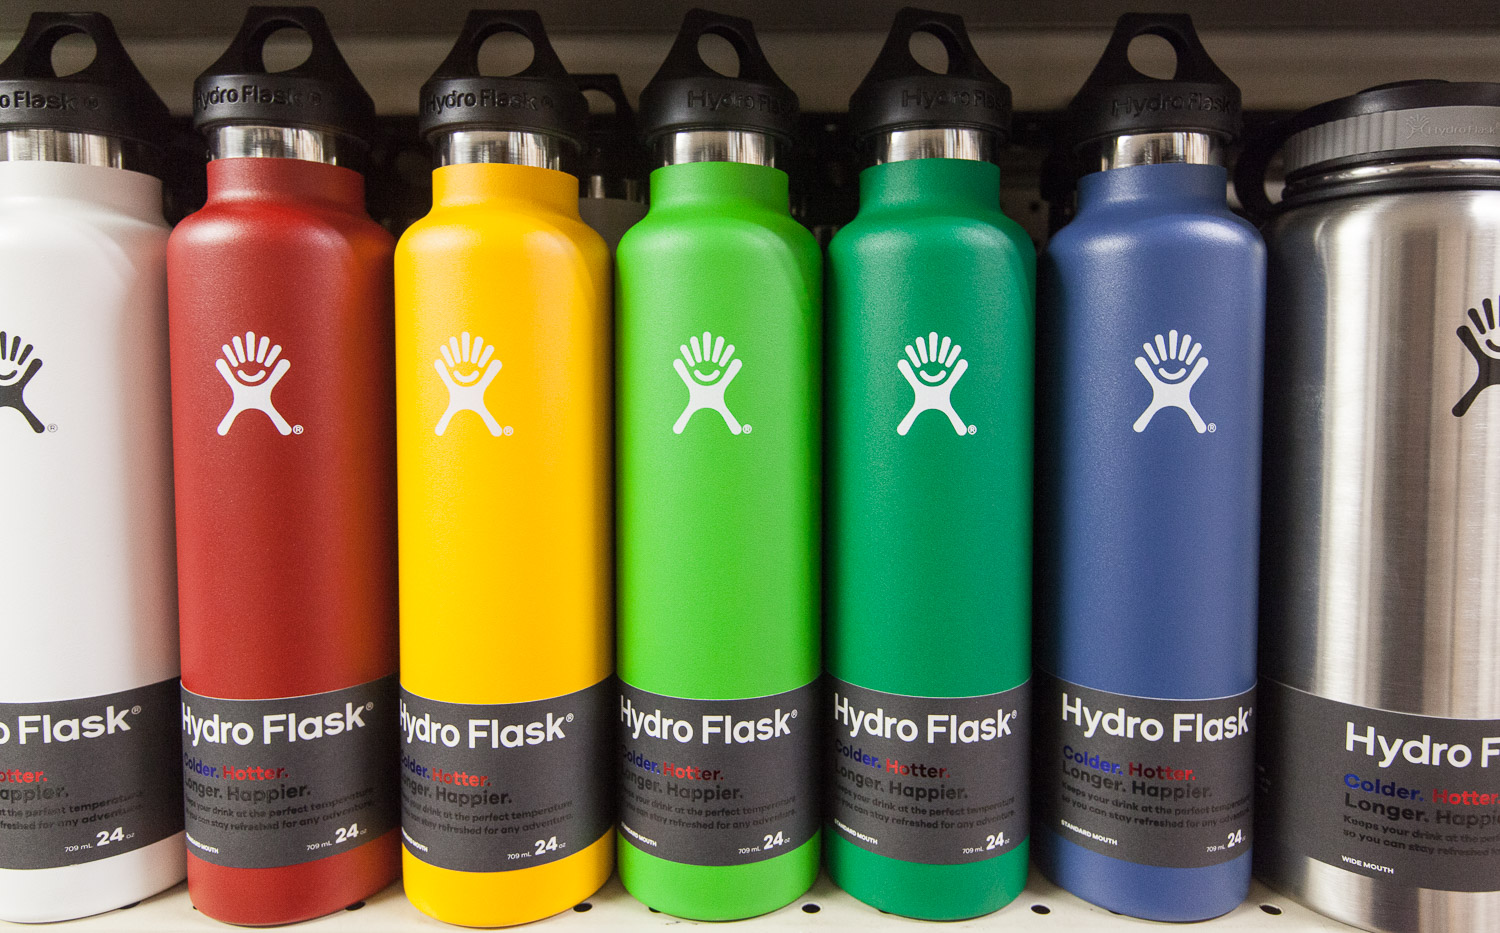 hydro-flask-assortment-mana-foods-gifts-household-department.jpg